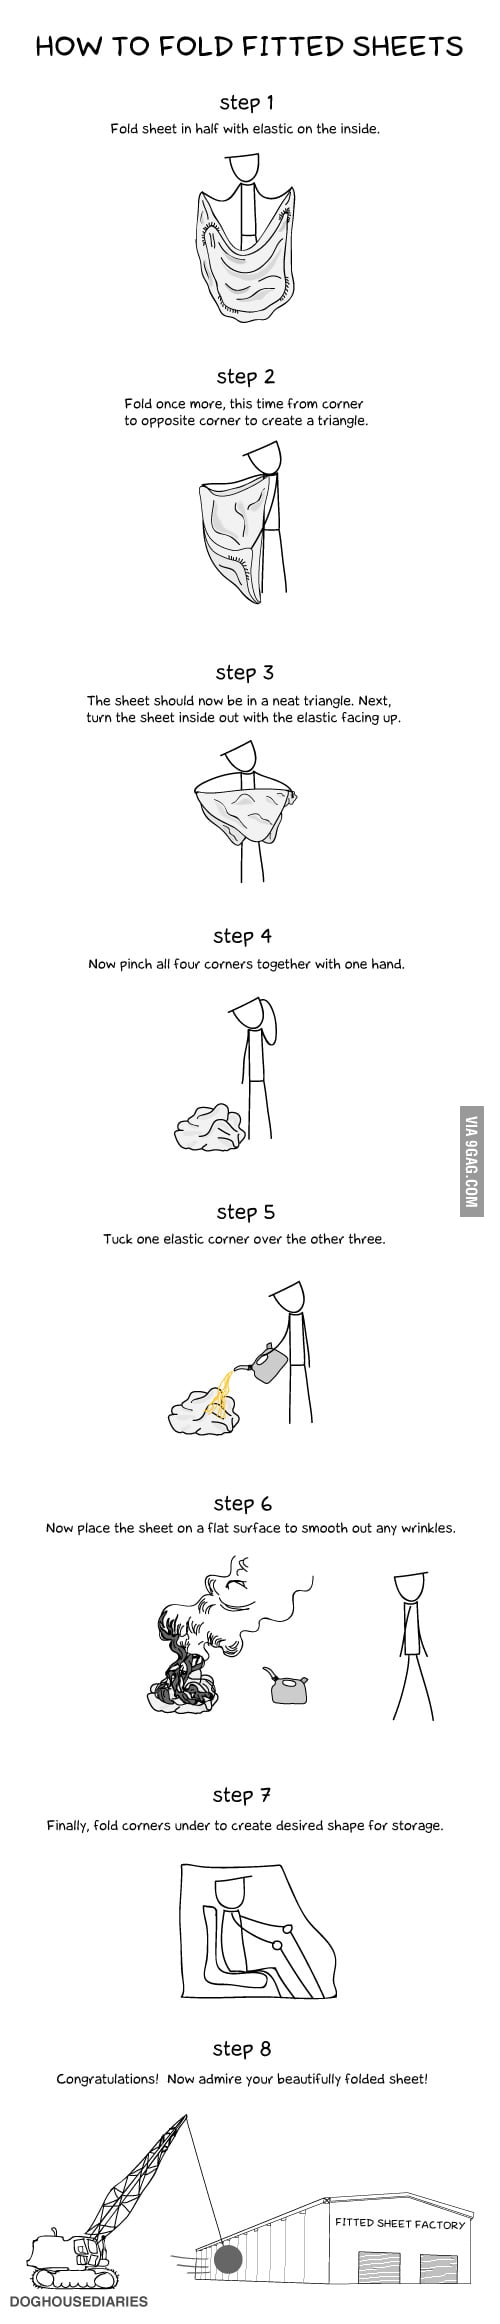 How to fold your fitted sheets